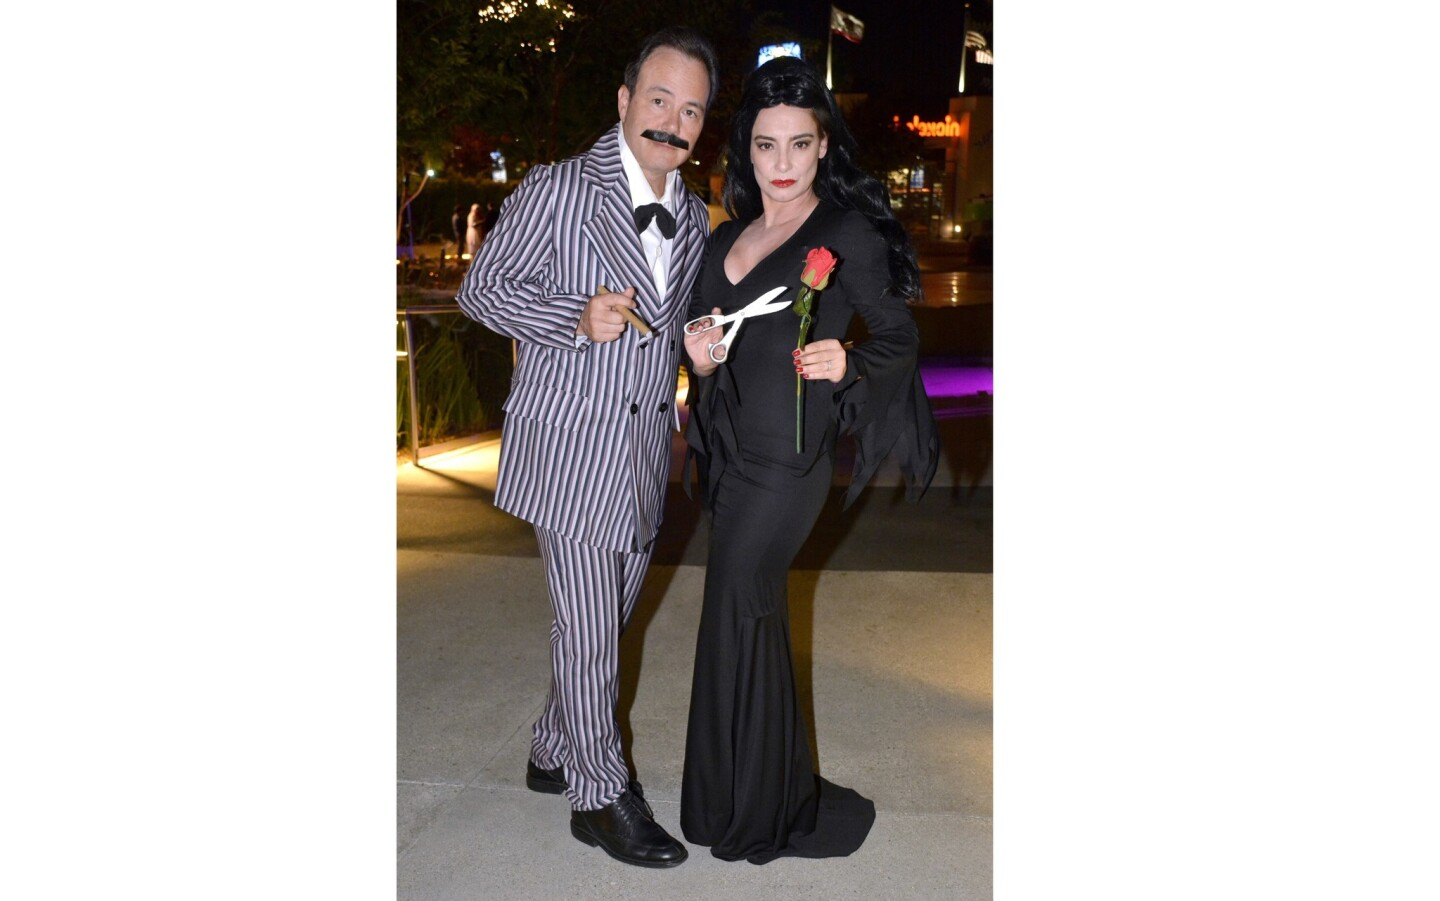 For this year's Leadership Burbank Halloween Bash Gema and Rey Sanchez went full-on creepy and kooky as Morticia and Gomez Addams.